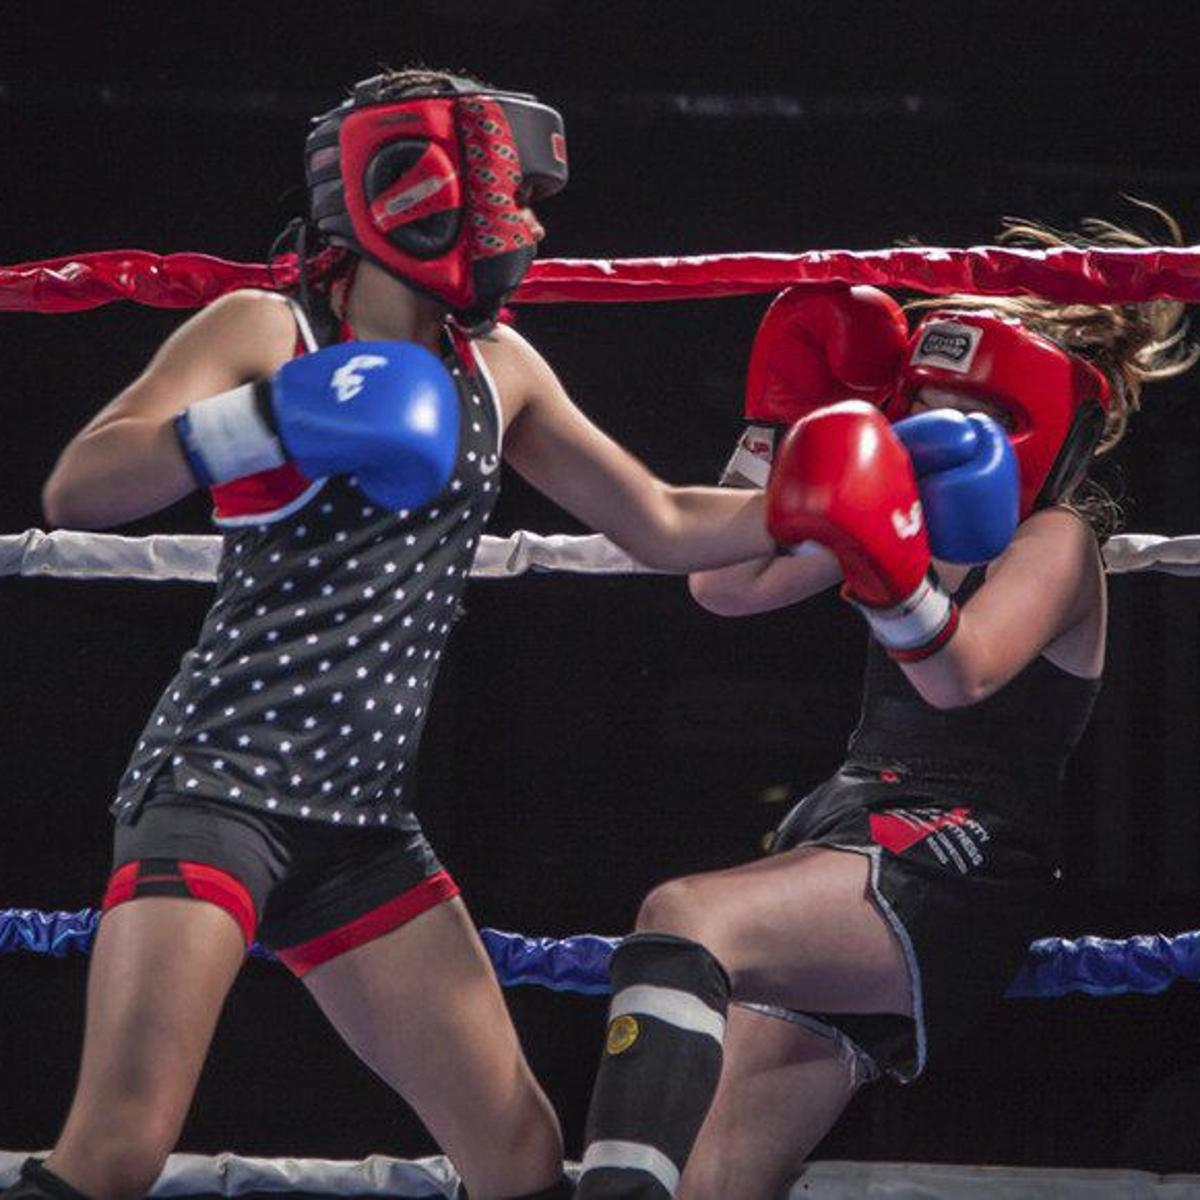 Lockport S Tankersley Earns Her Second Straight Ring Victory On